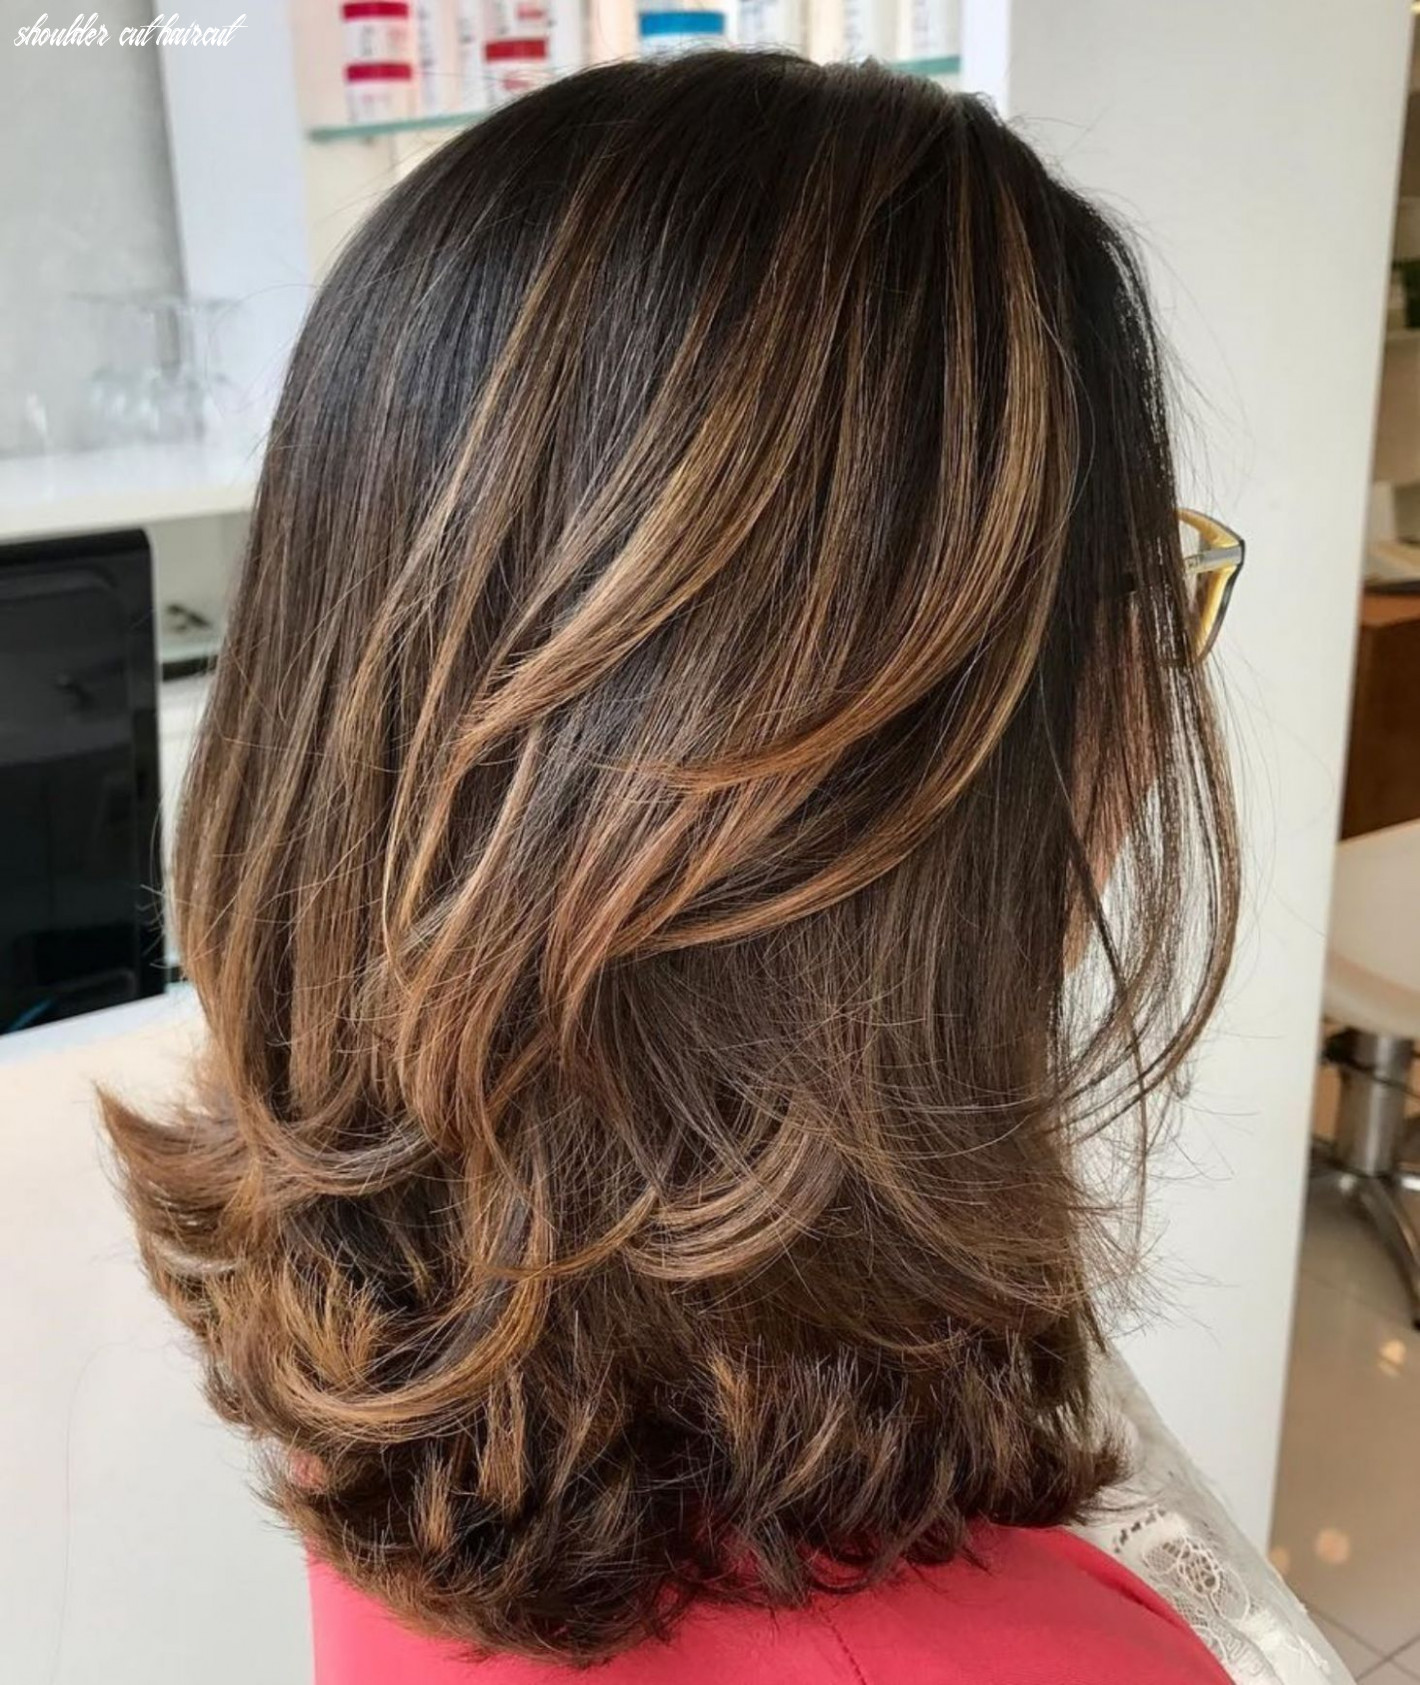 Pin on pam hairstyles shoulder cut haircut